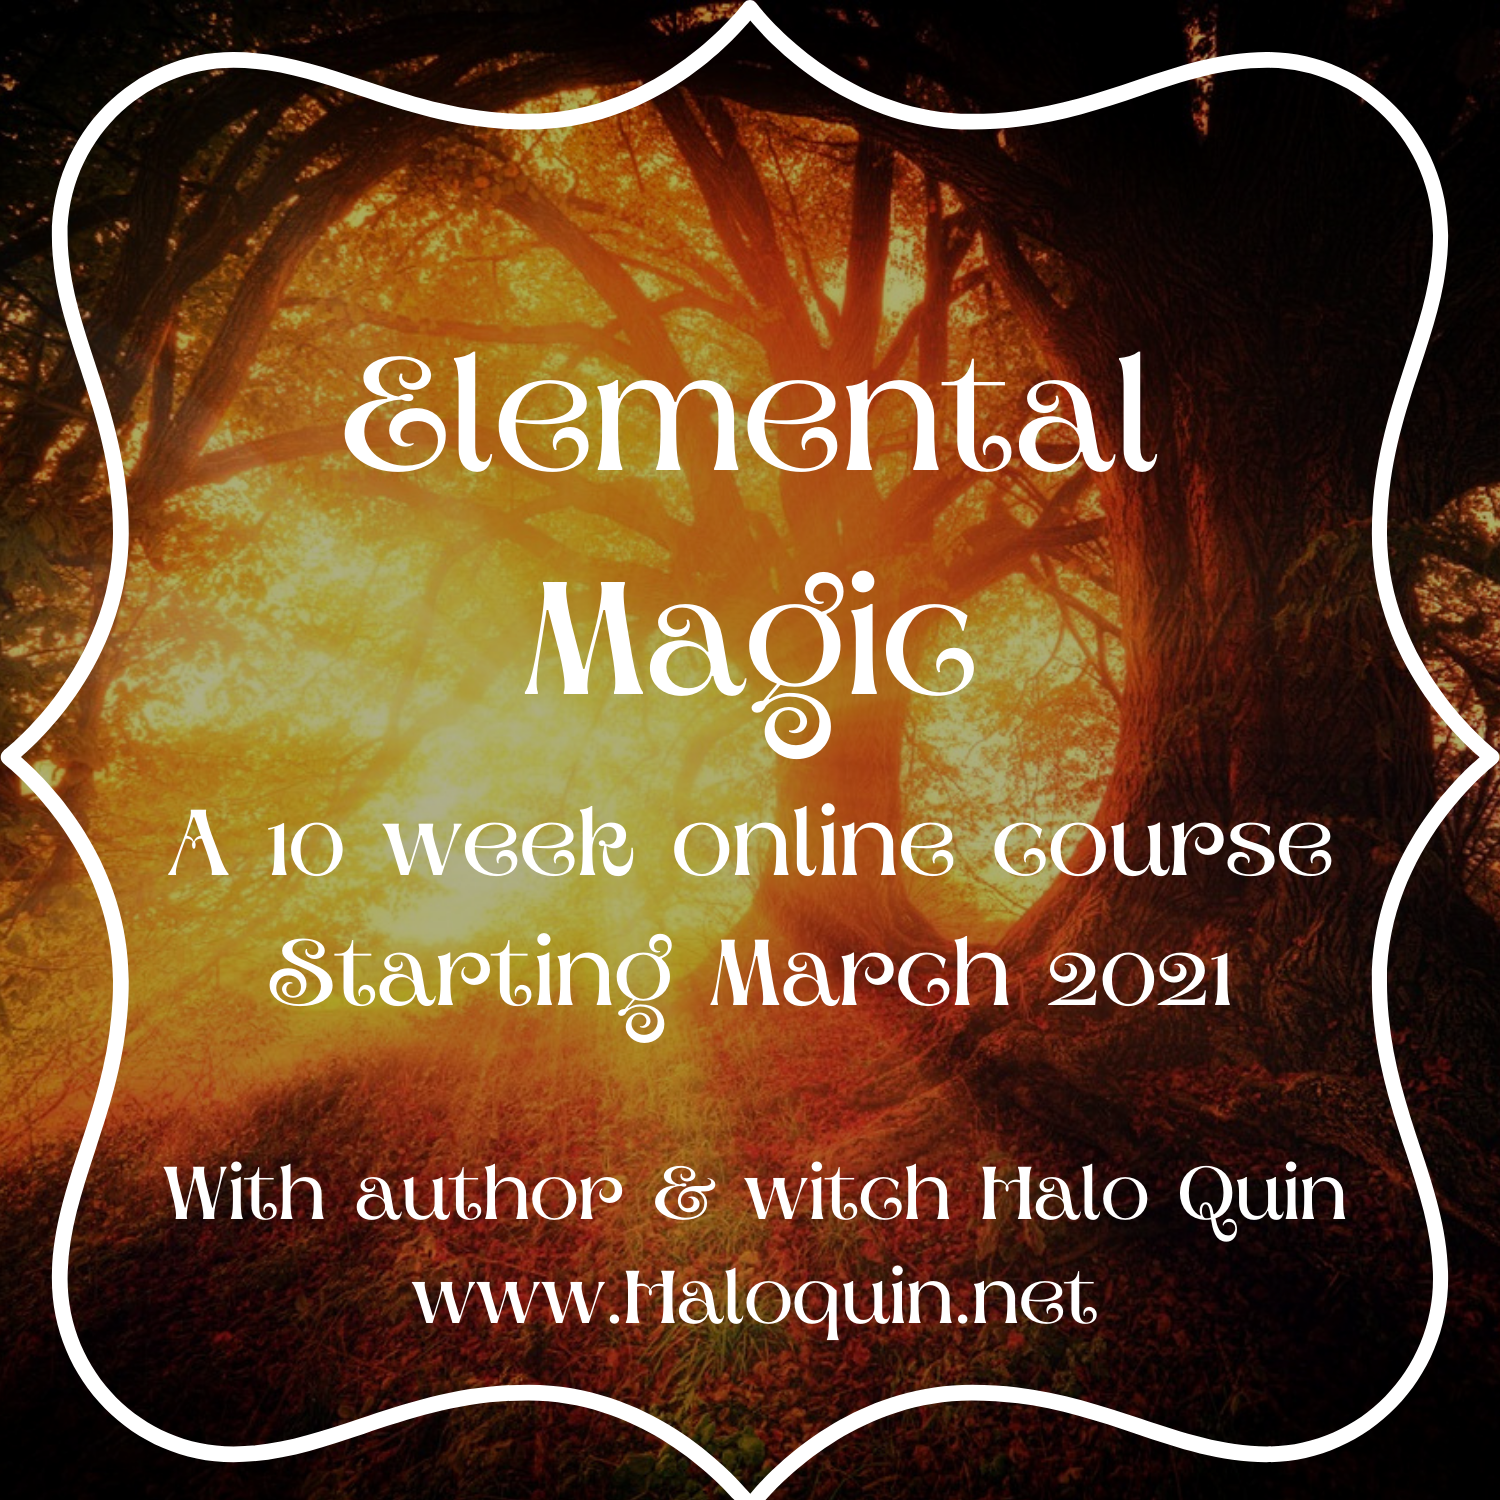 Elemental Magic; At The crossroads of Here and Now (4)